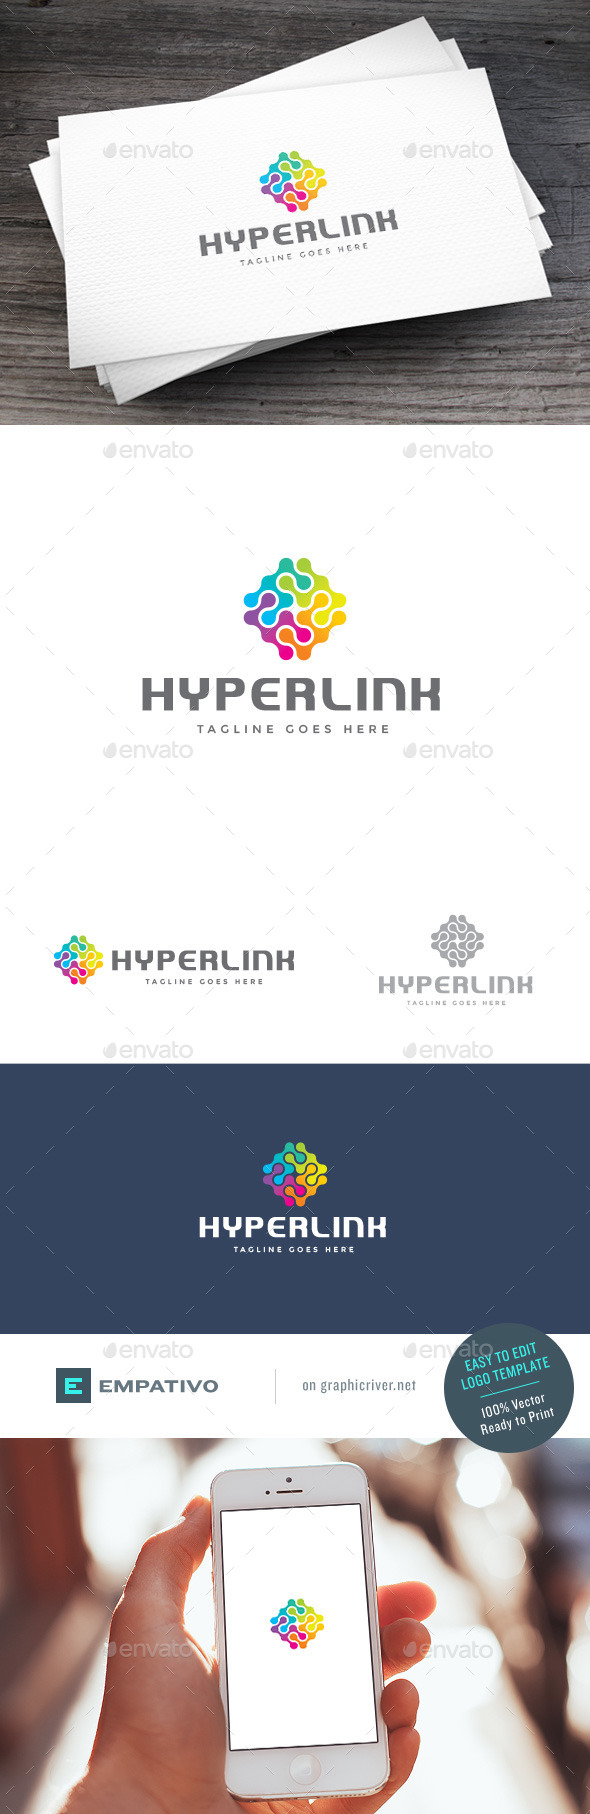 GraphicRiver Hyperlink Logo Template 11119110